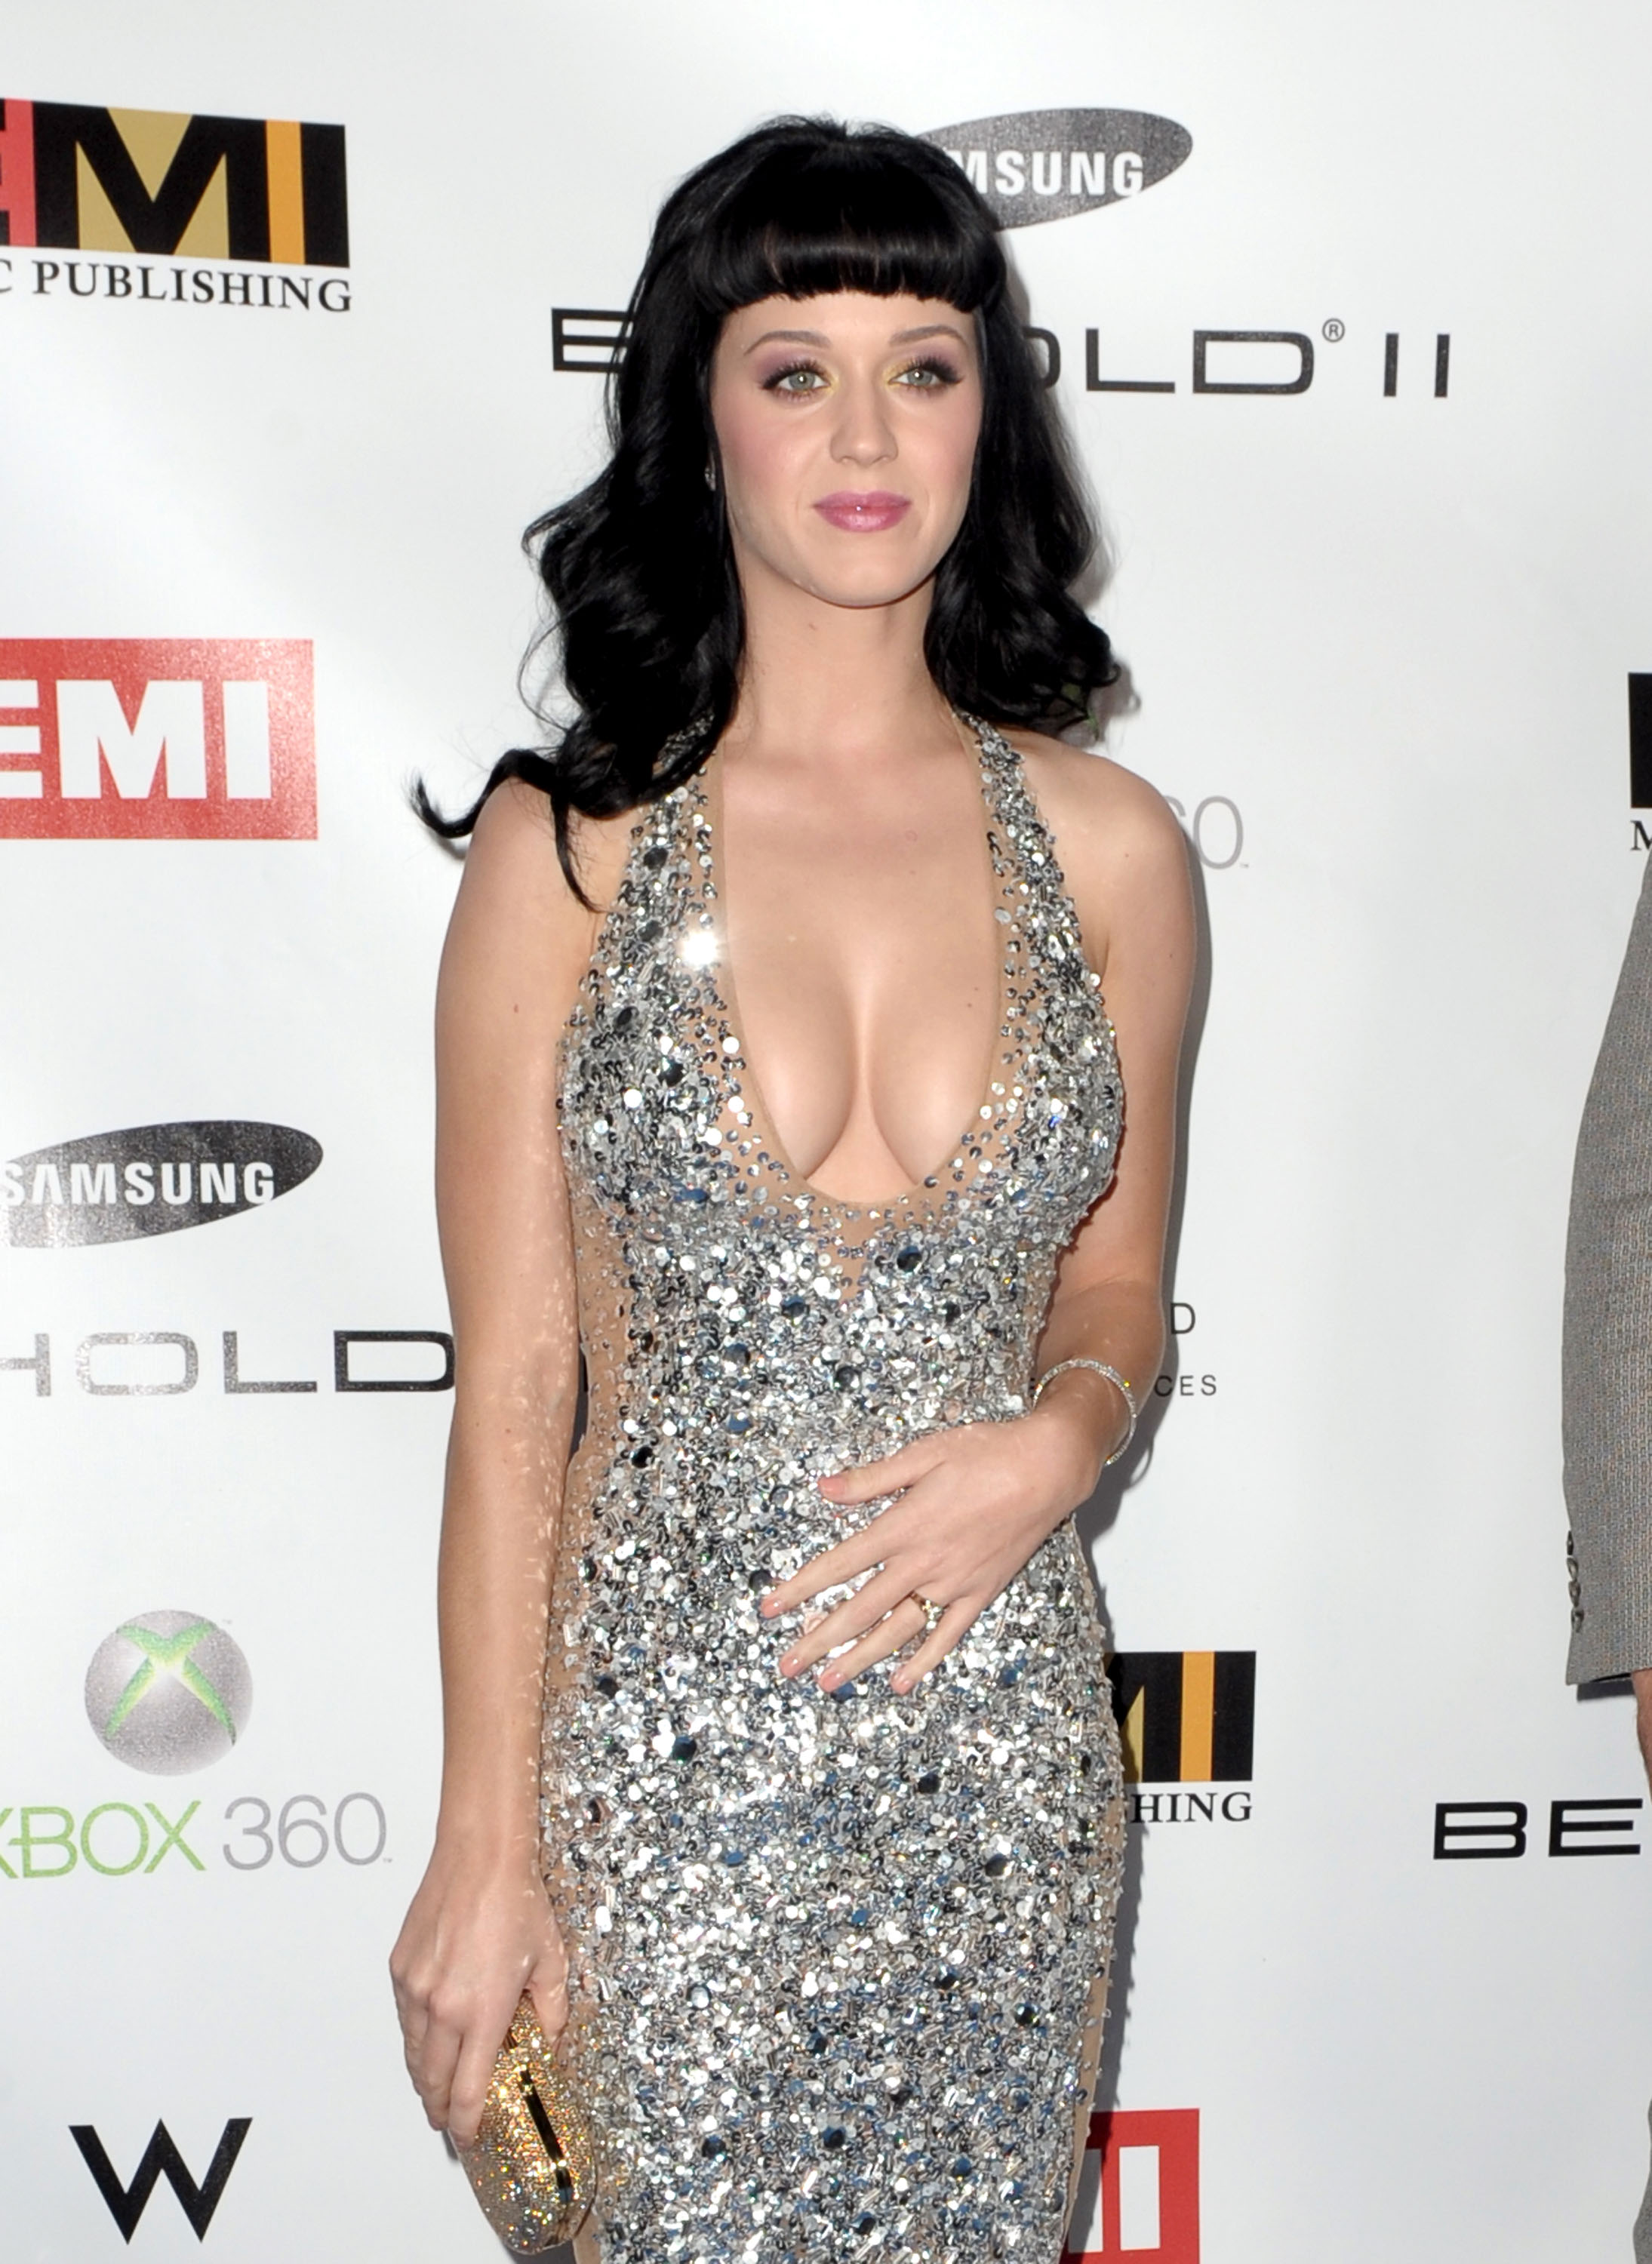 HOLLYWOOD - JANUARY 31: Musician Katy Perry attends the 2010 EMI GRAMMY Party at the W Hollywood Hotel and Residences on January 31, 2010 in Hollywood, California. (Photo by Michael Buckner/Getty Images)